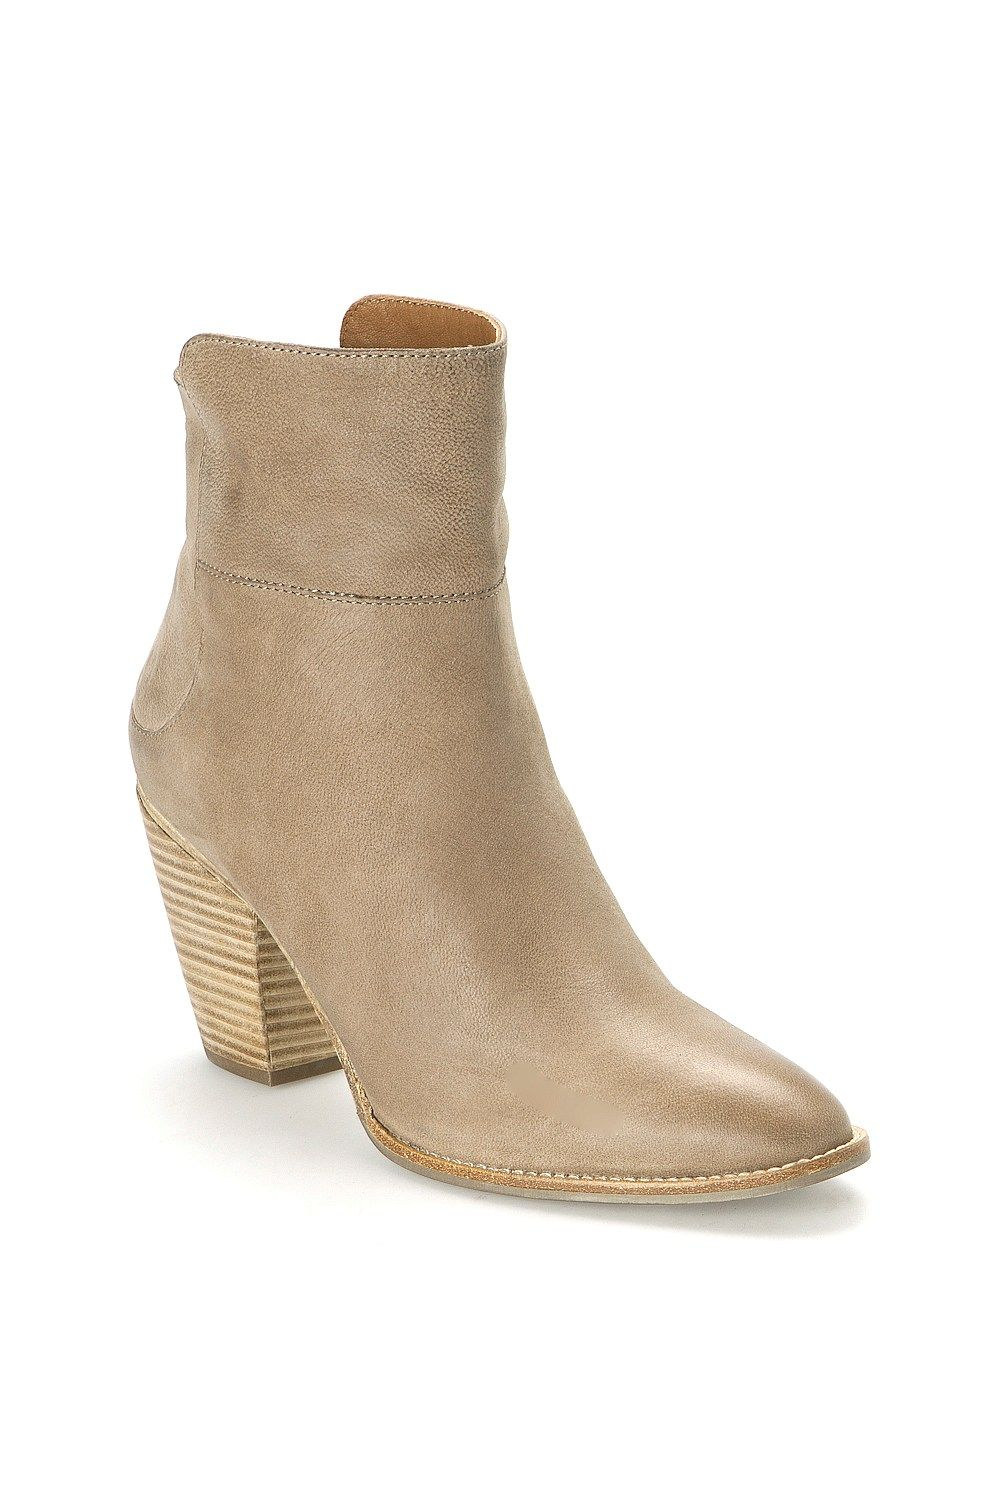 14238d467eb Country Road - Women s Boots Online - Mena Ankle Boot